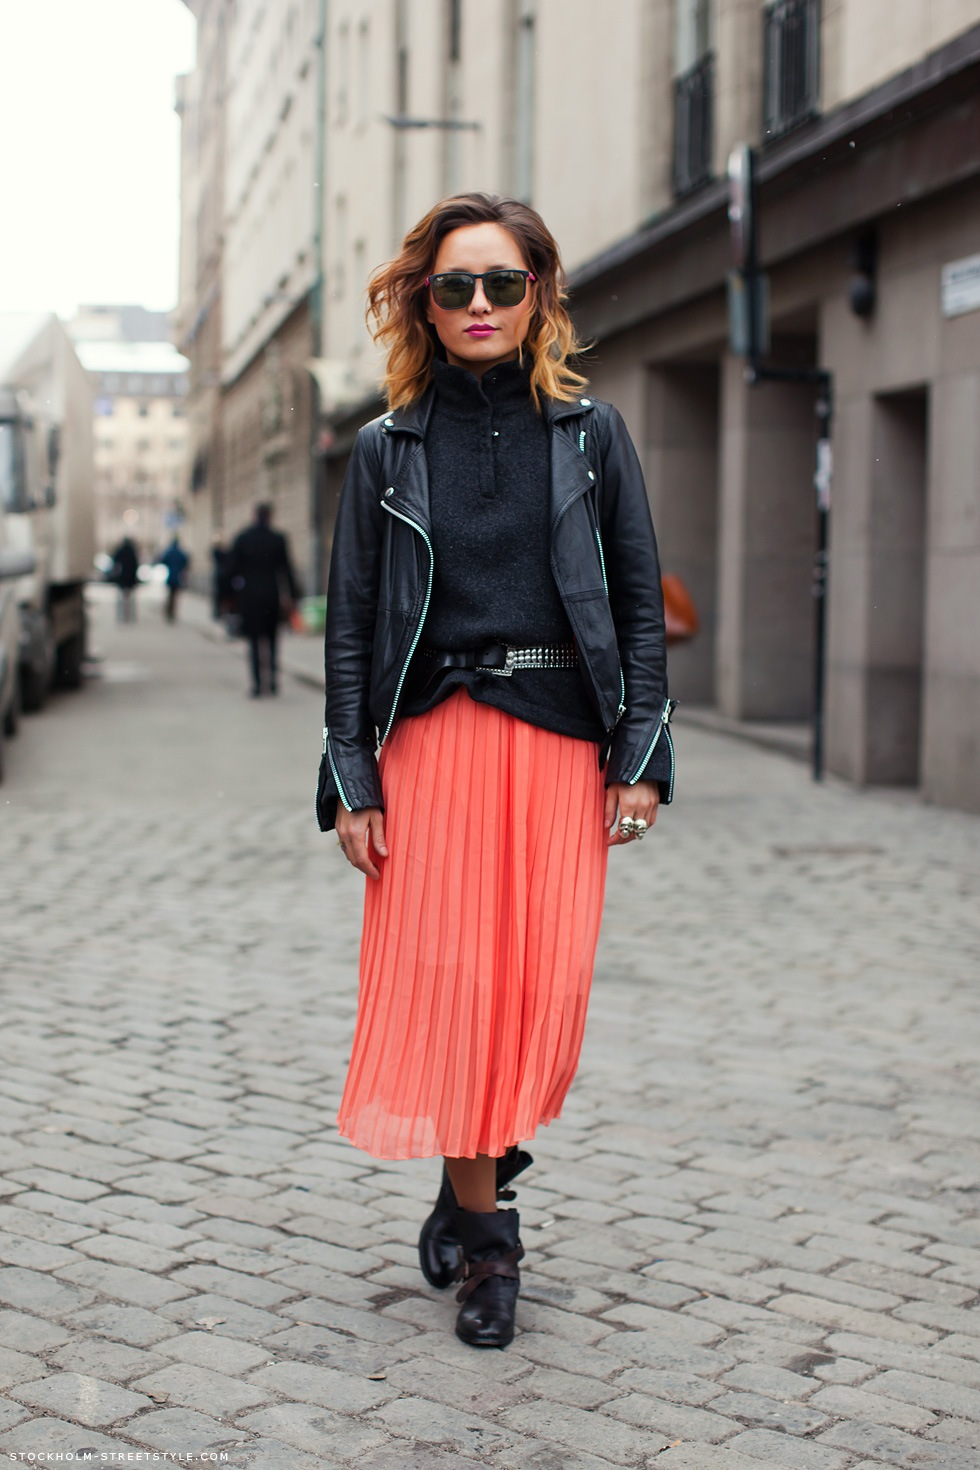 How to wear a Pleated Skirt | Dress Me Blog Me